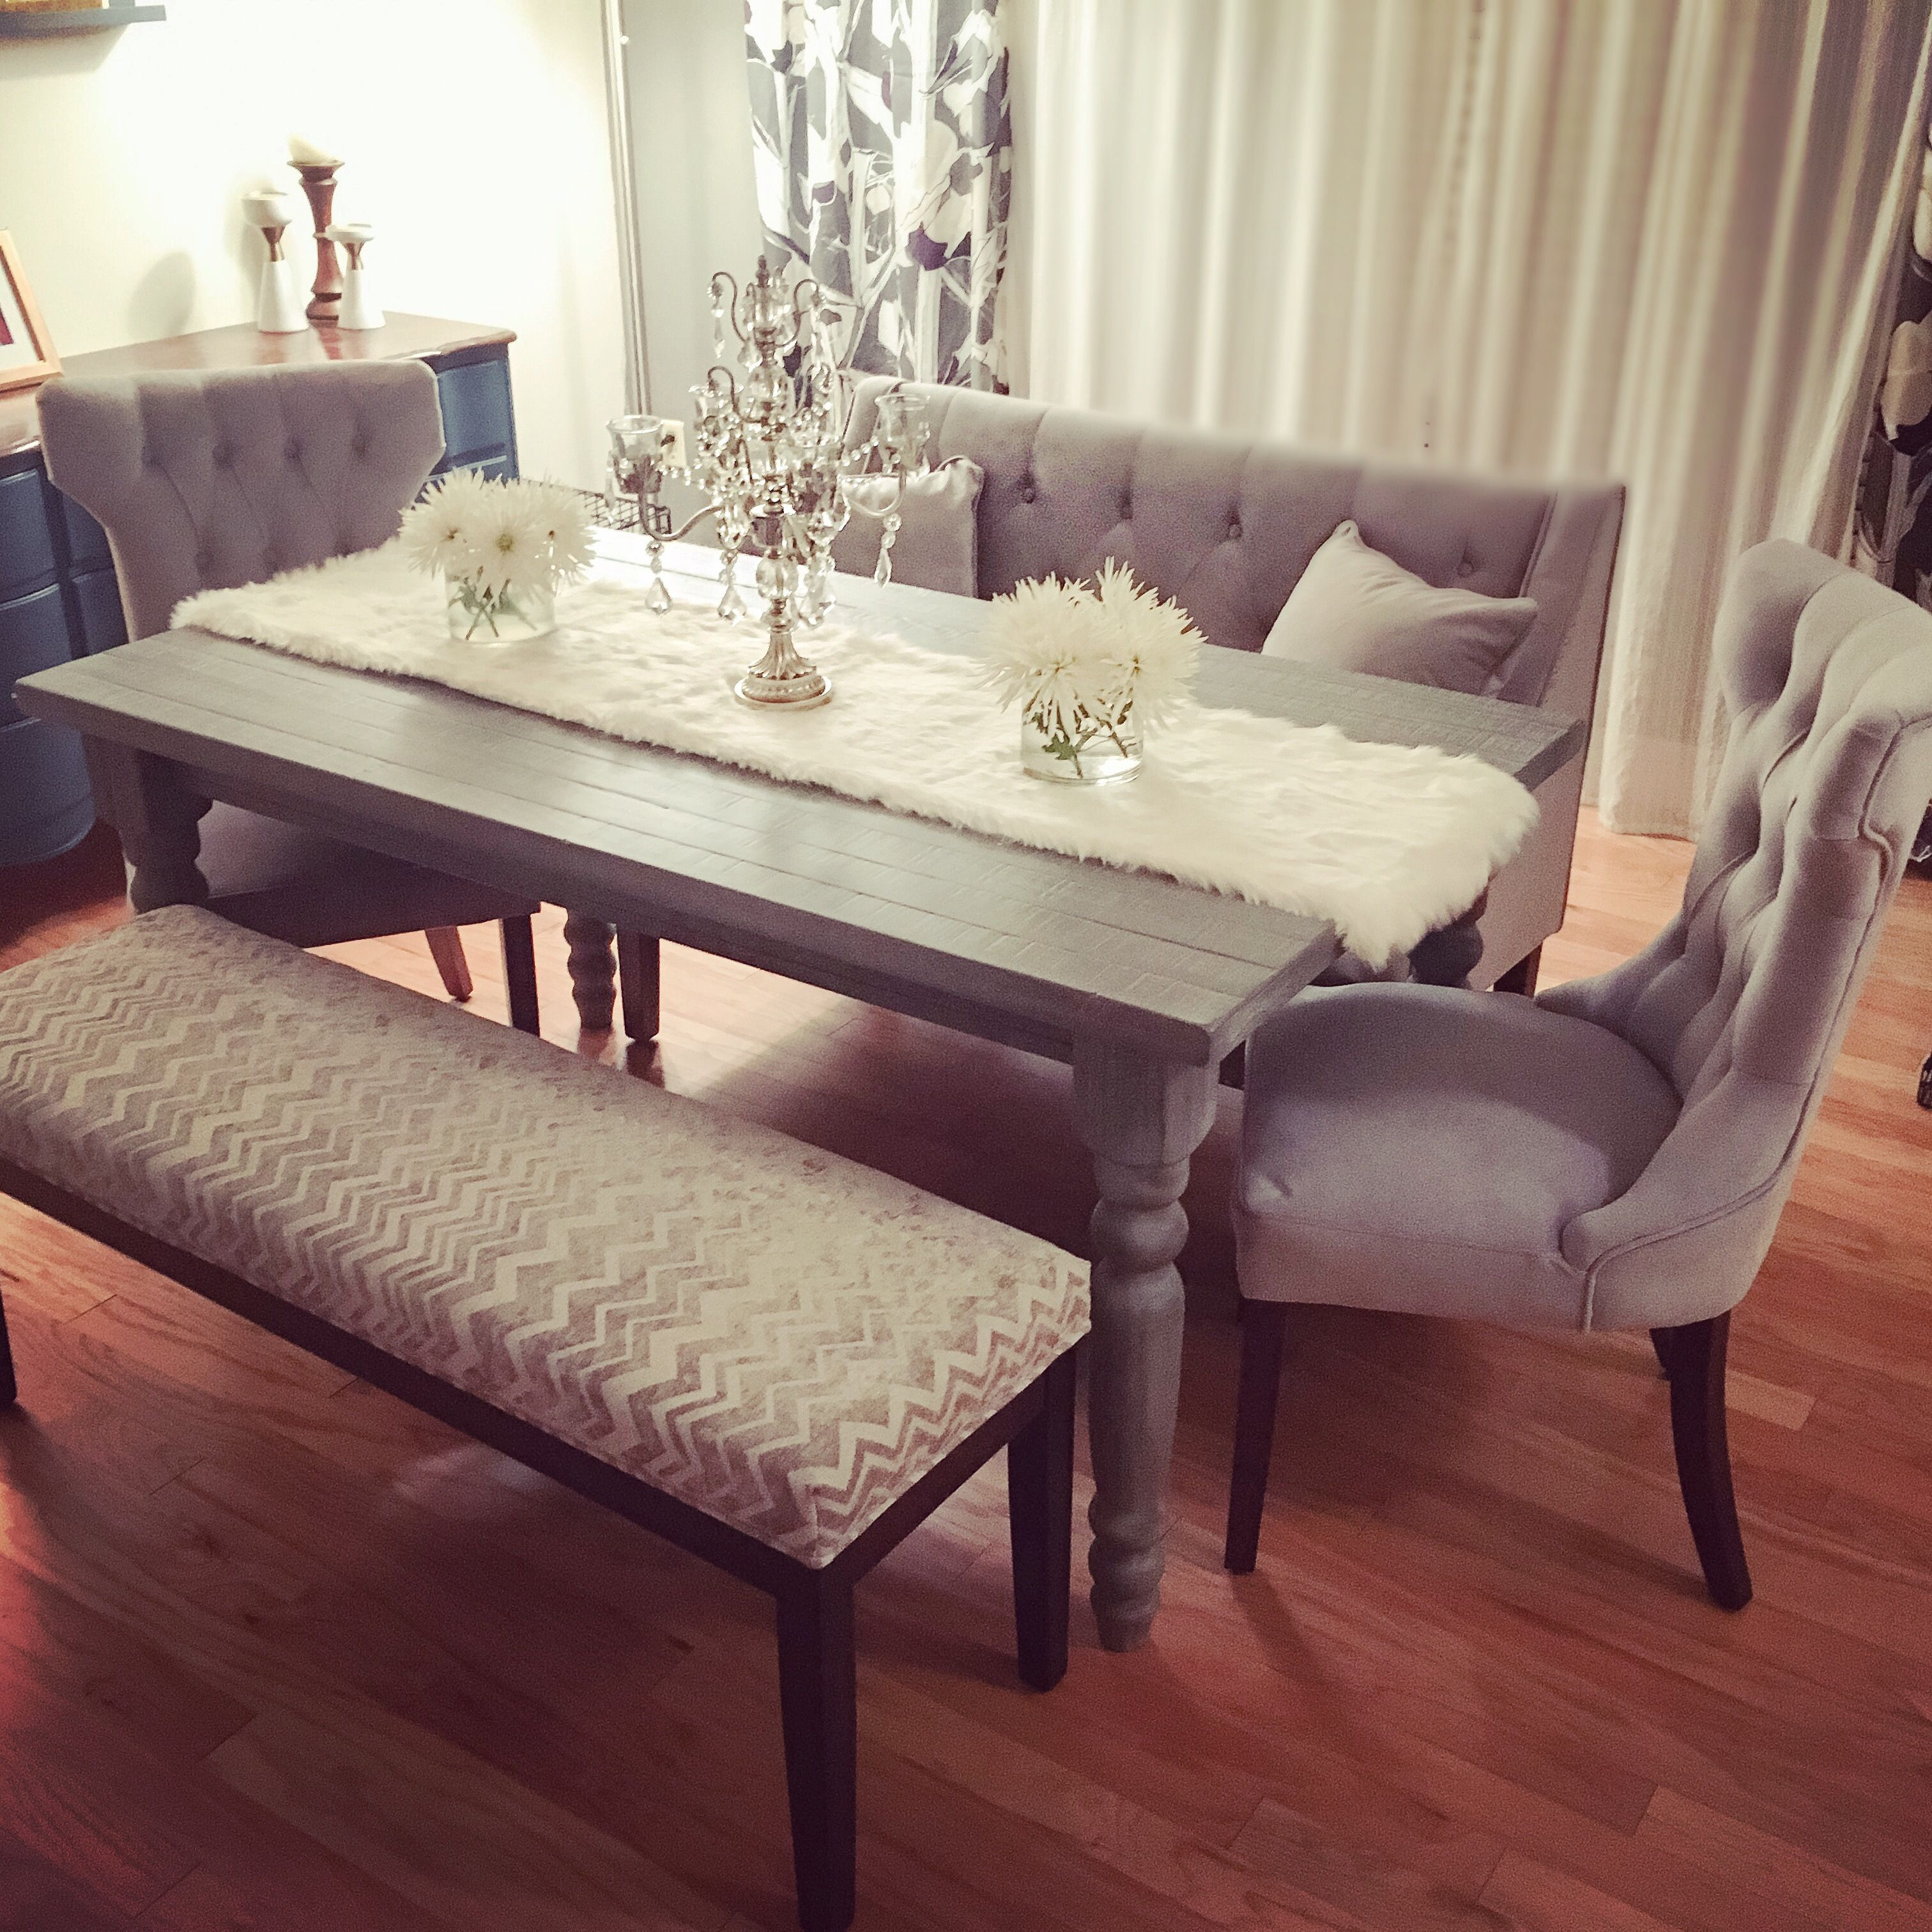 My new grey rustic chic dining table set. Tufted velvet